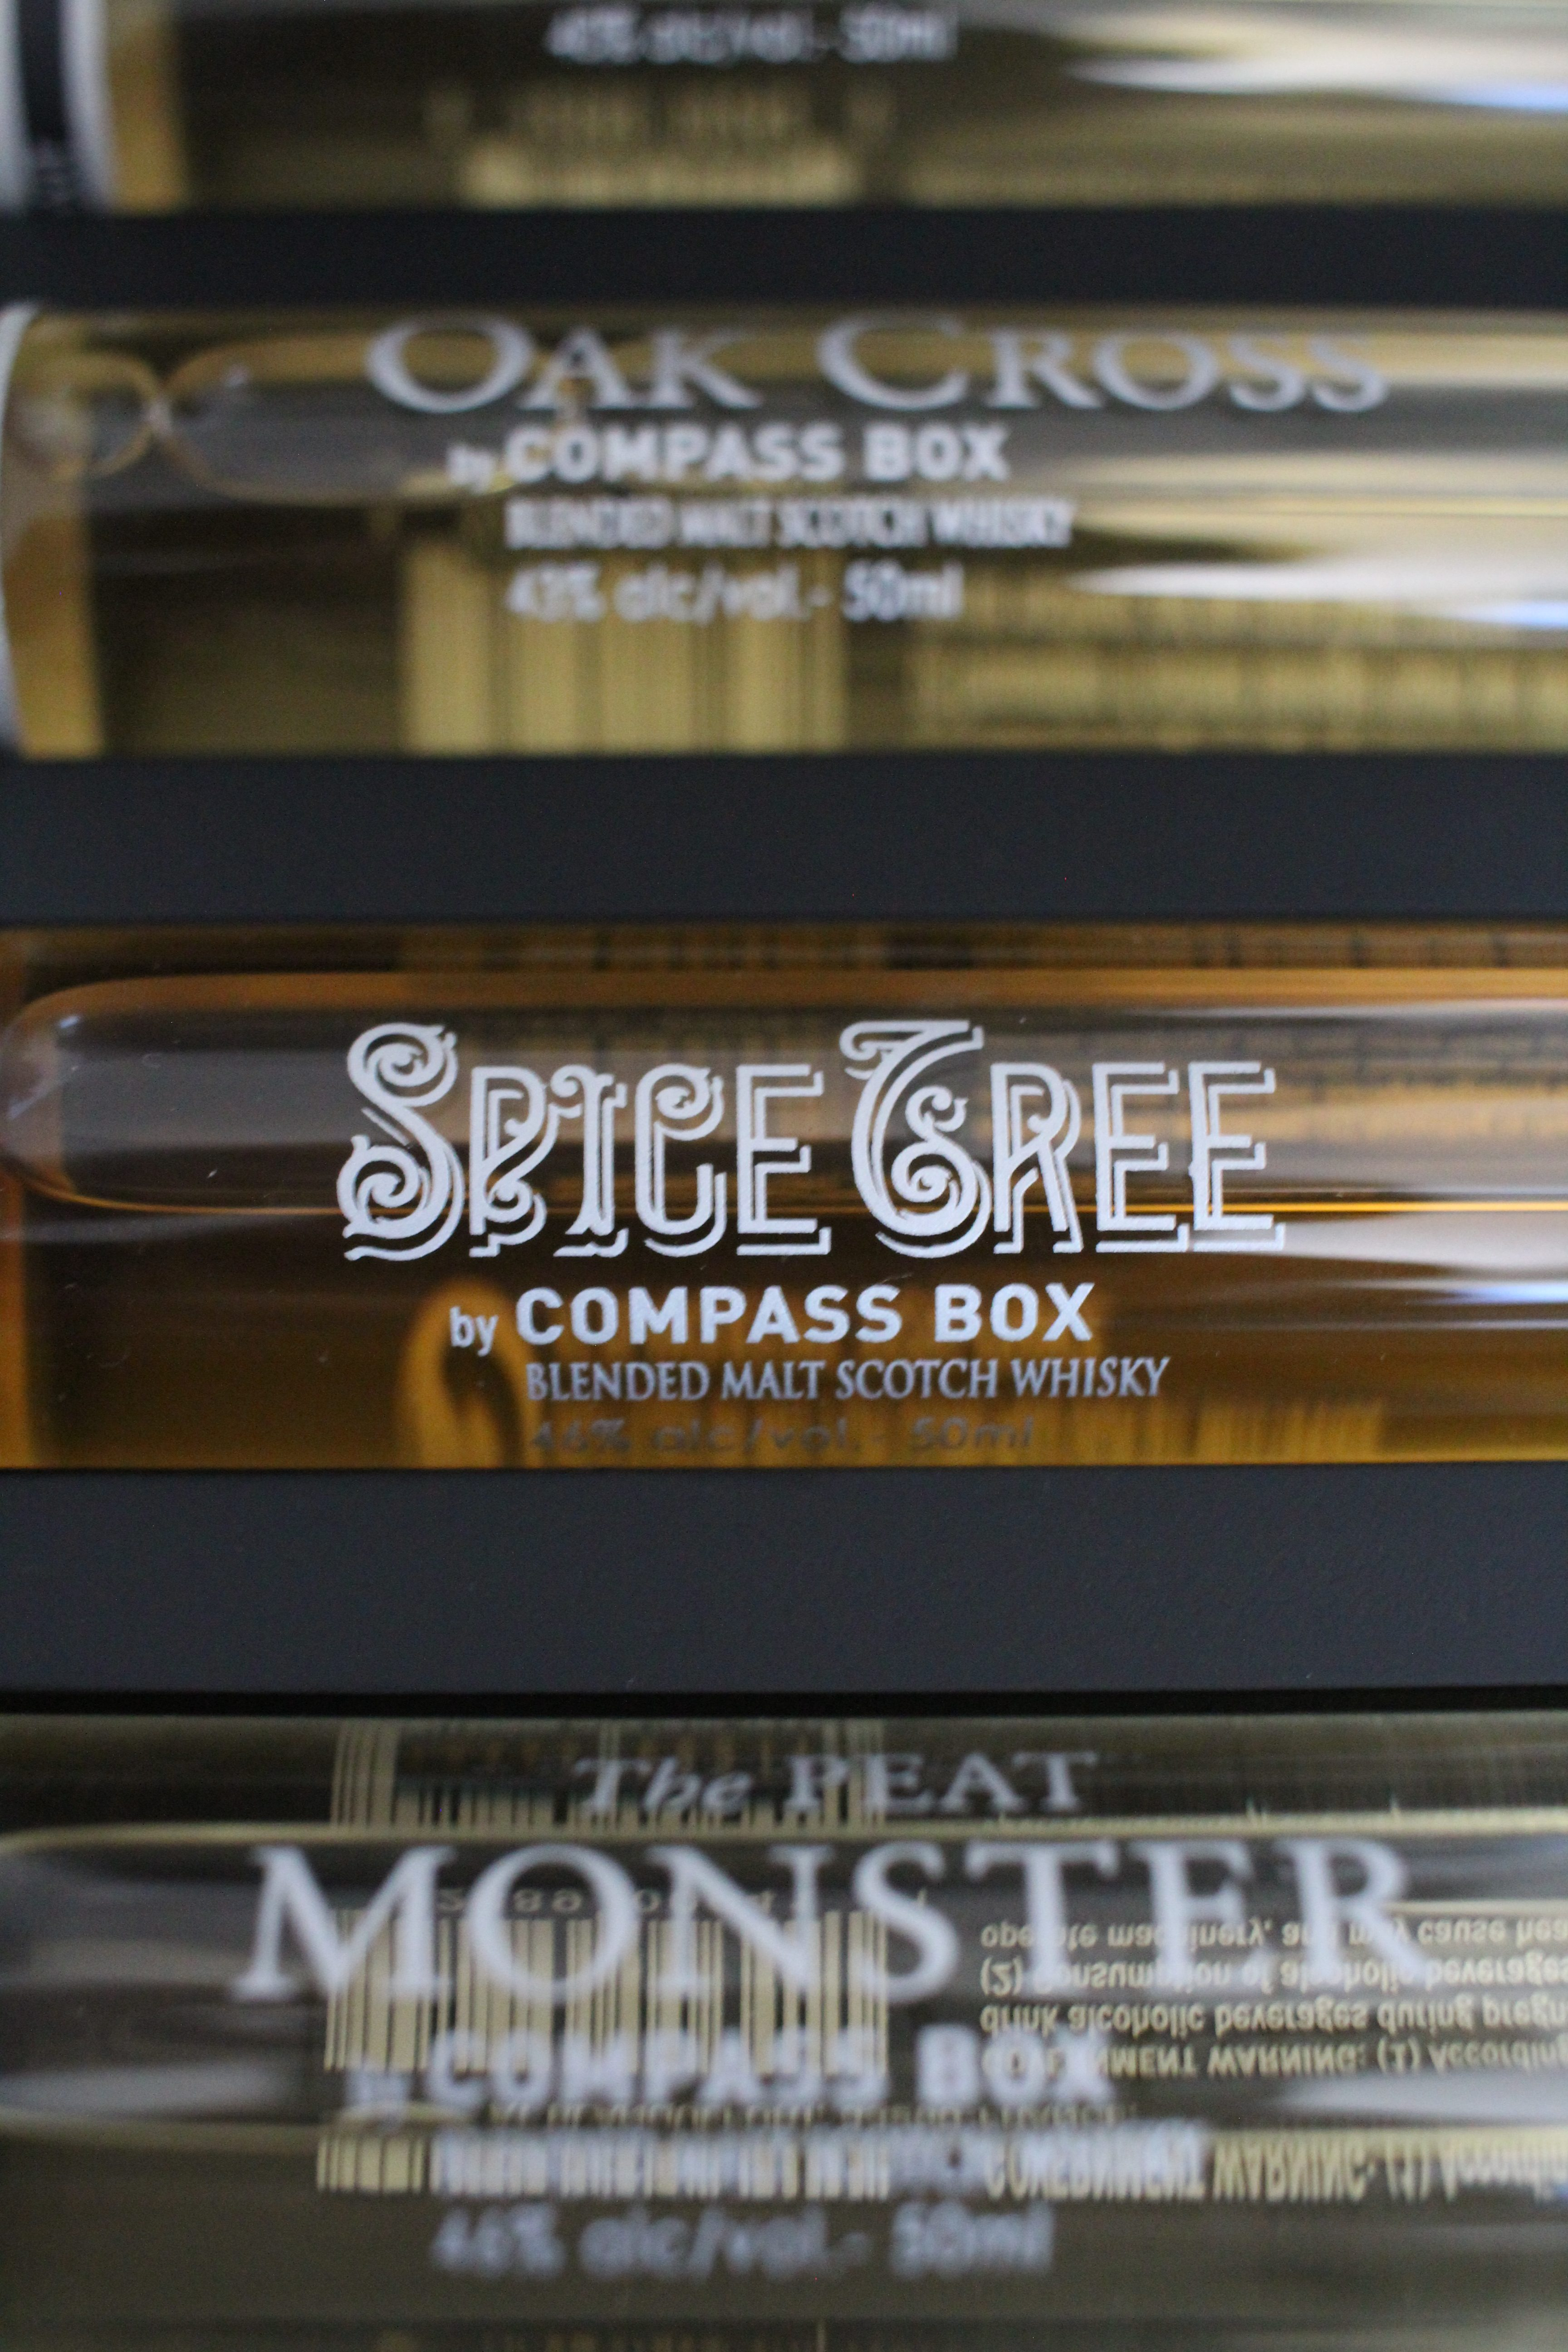 Compass Box Spice Tree with Dan